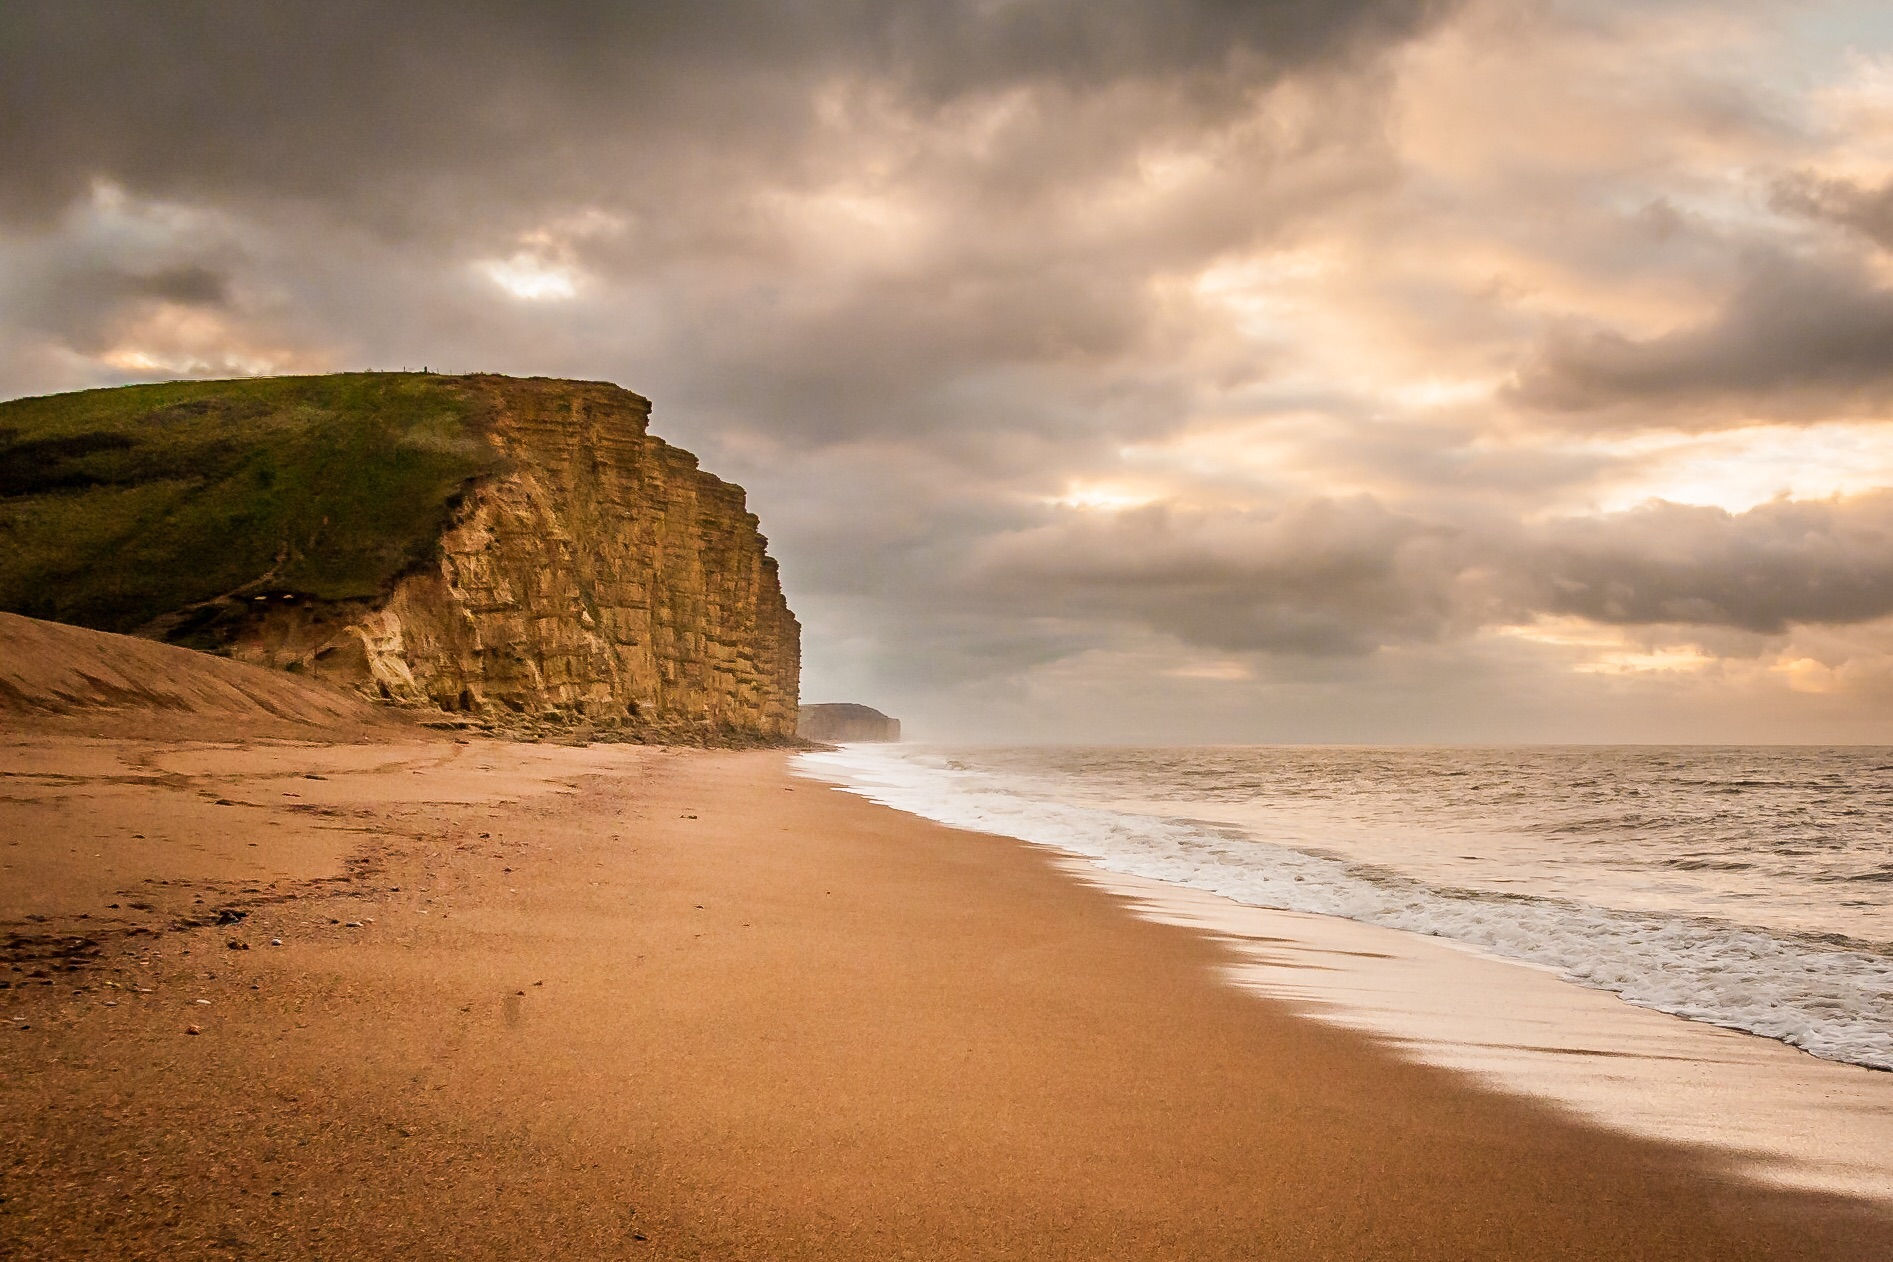 West Bay beach and cliffs  Once described be me as Gold Cap (I know it should be Golden Cap), this is actually the view looking the other way from West bay beach, towards Burton Bradstock. Another great Dorset view with lots going on in the sky and a very enticing beach leading to those lovely golden cliffs.